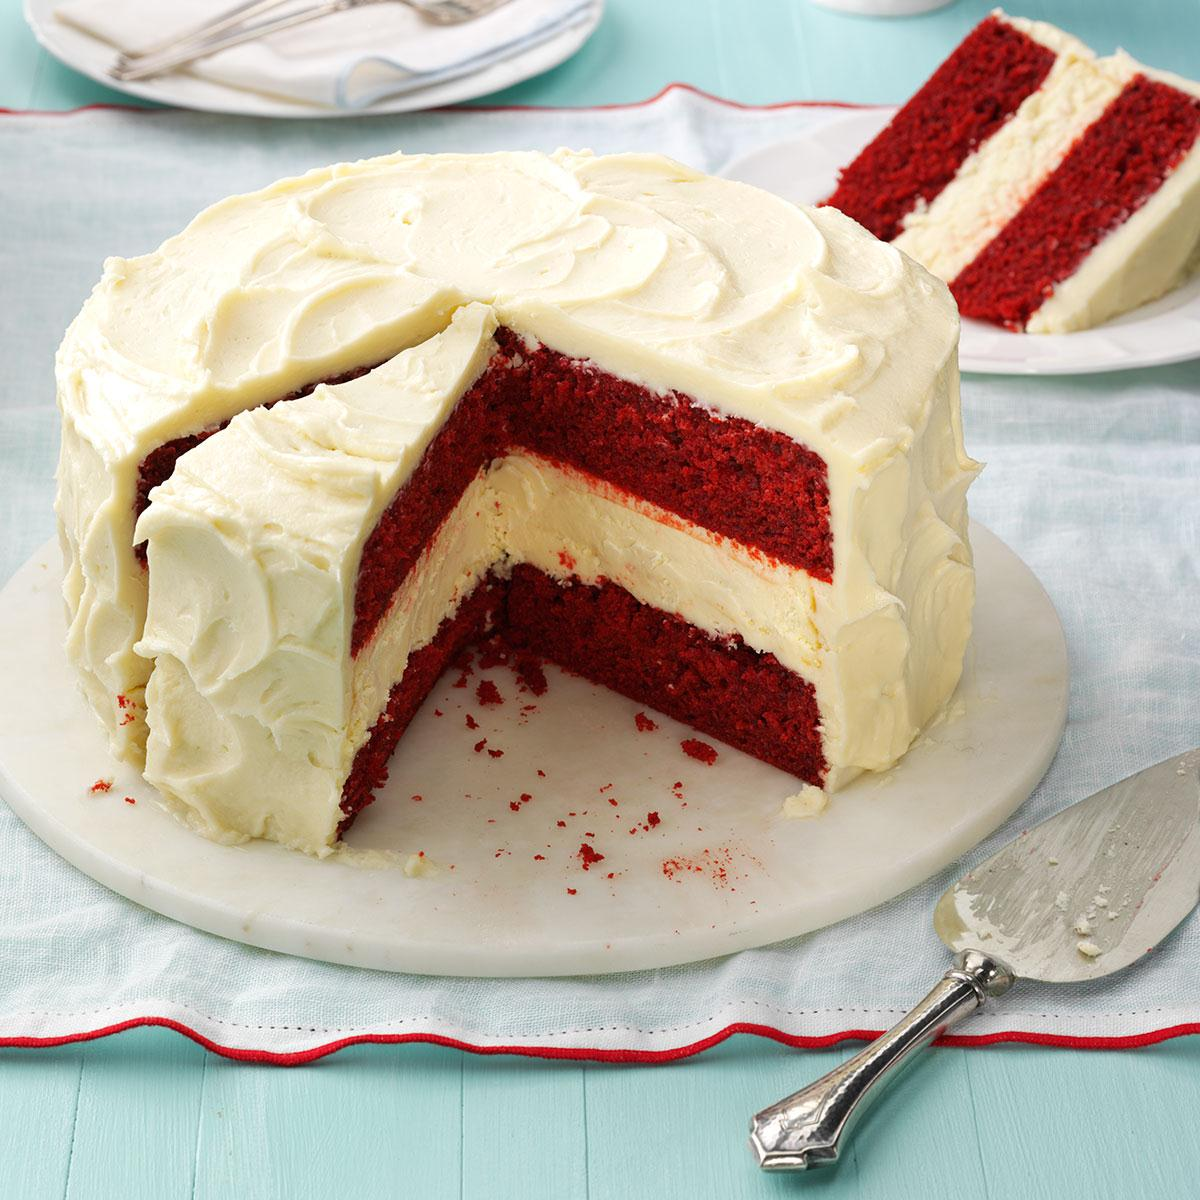 Tremendous Cheesecake Layered Red Velvet Cake Recipe Taste Of Home Funny Birthday Cards Online Barepcheapnameinfo